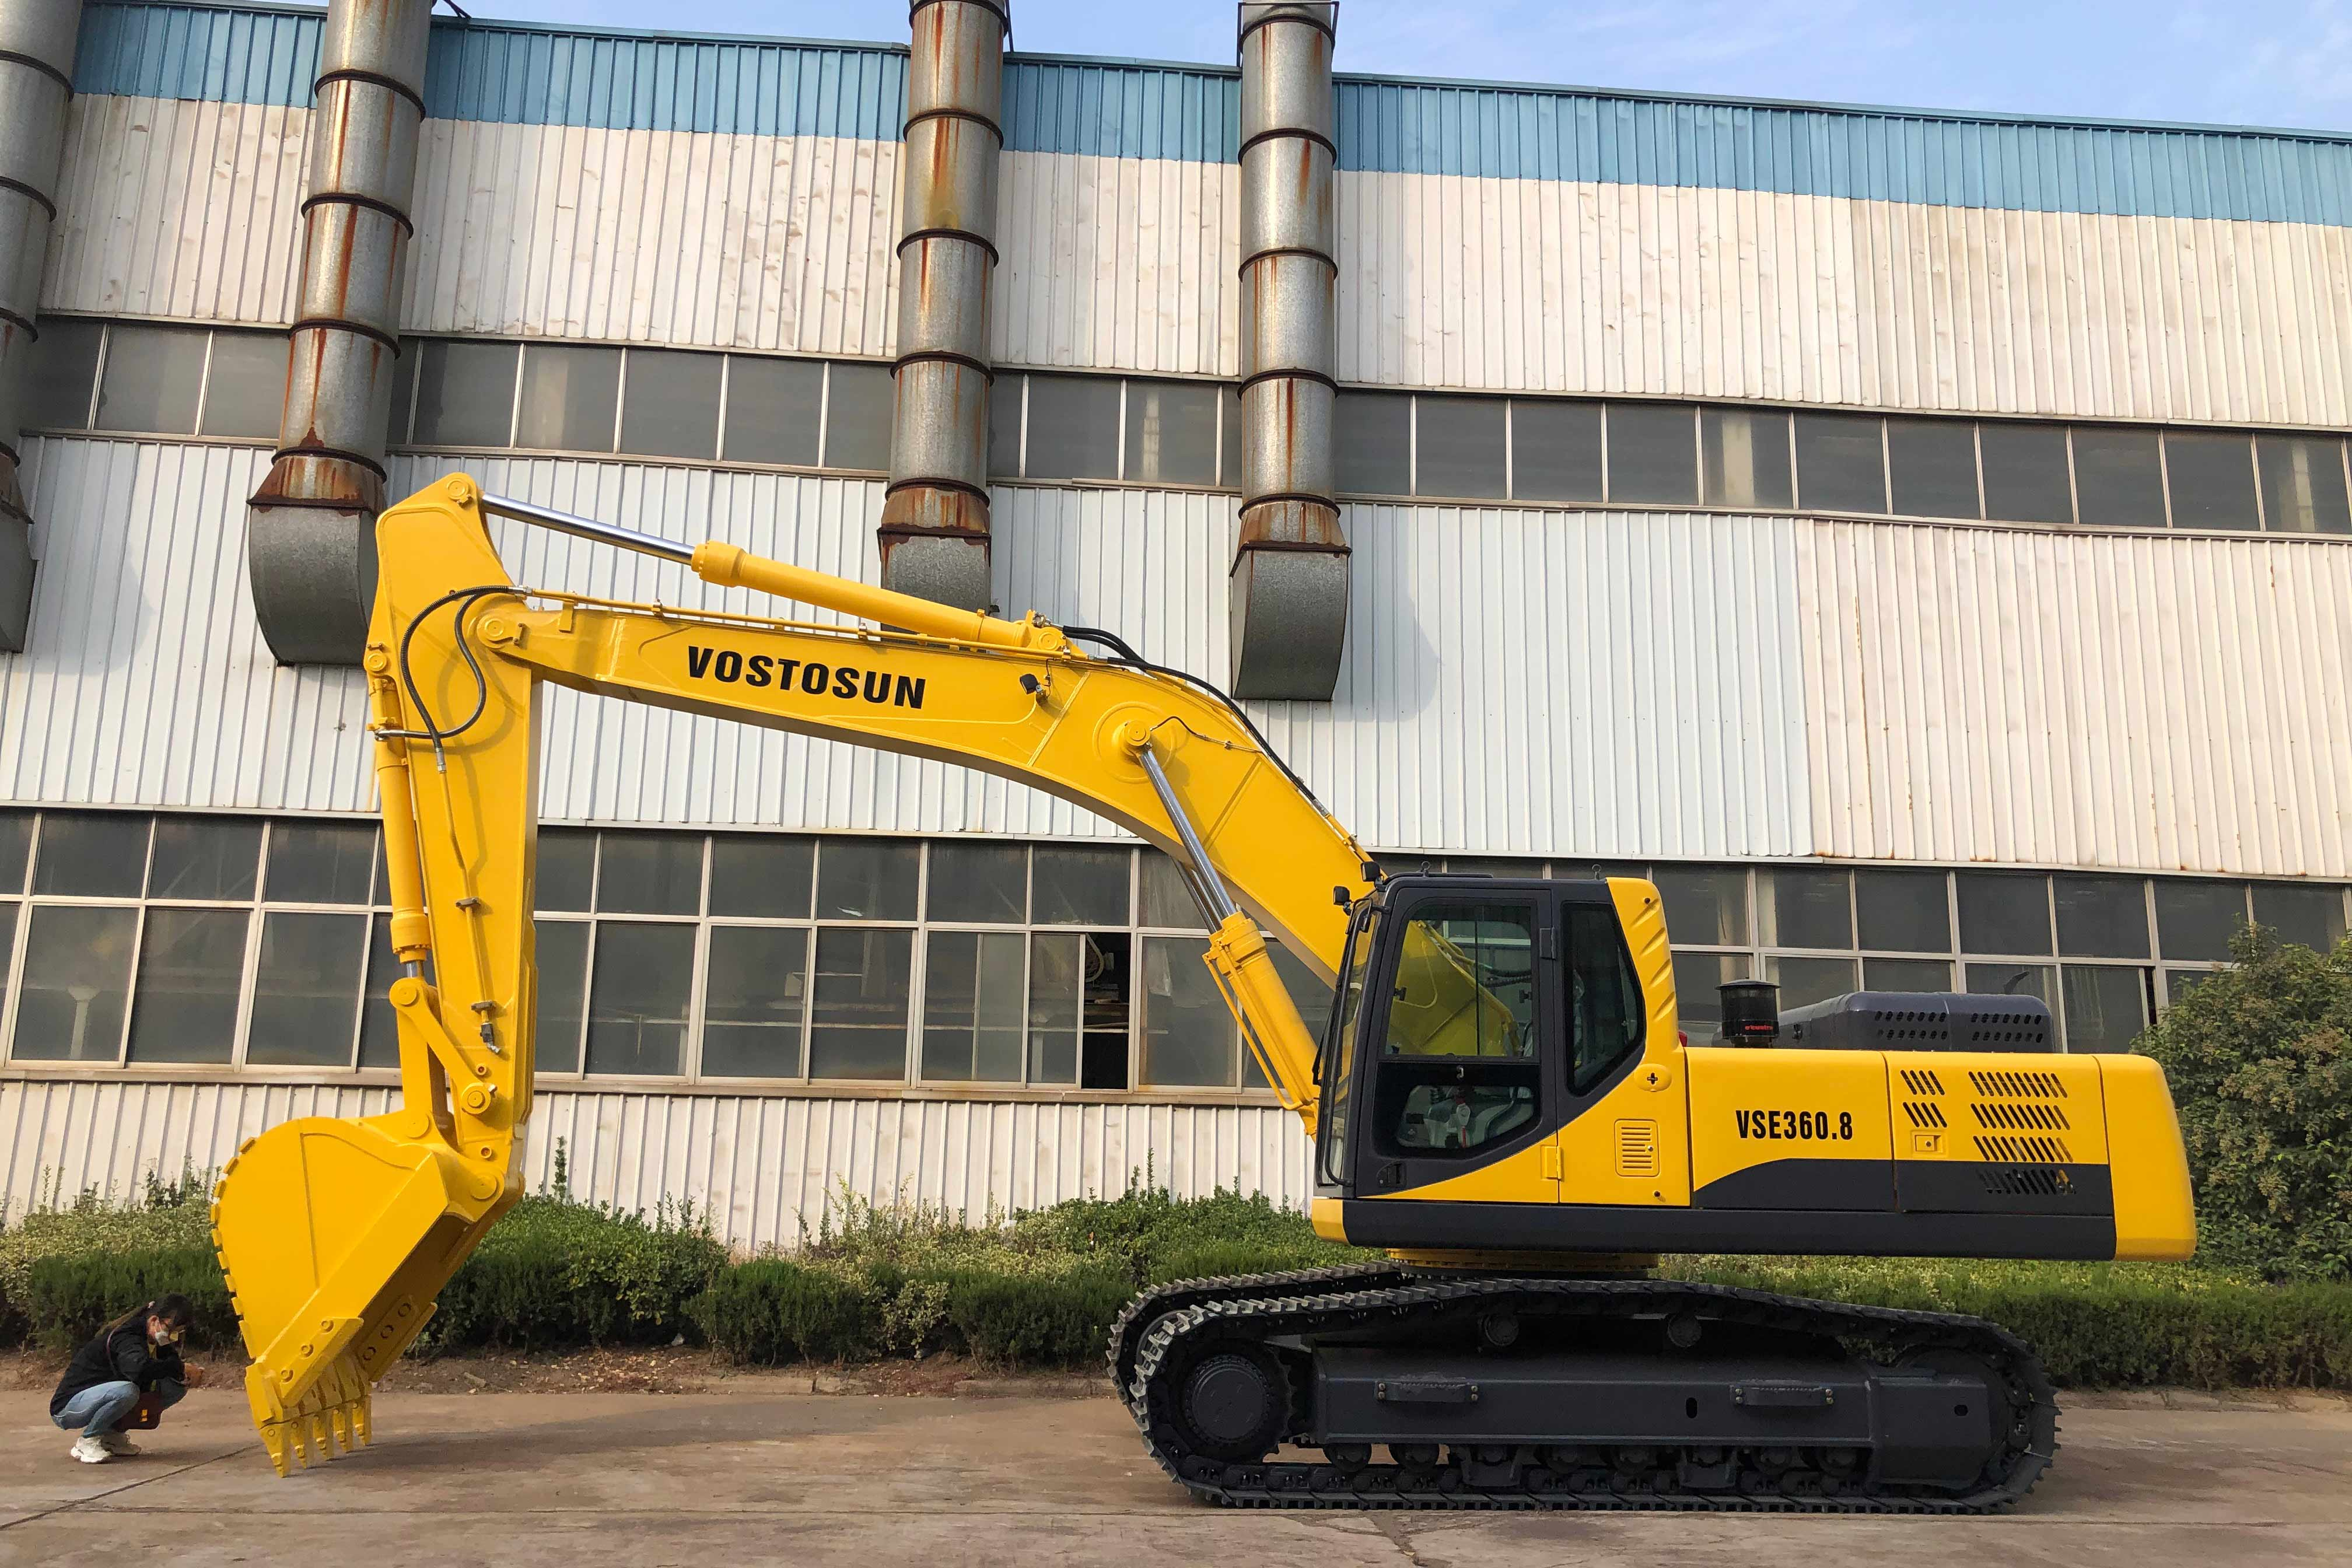 On October 13, 2020, the excavators purchased by a Nigerian customer began to be shipped.